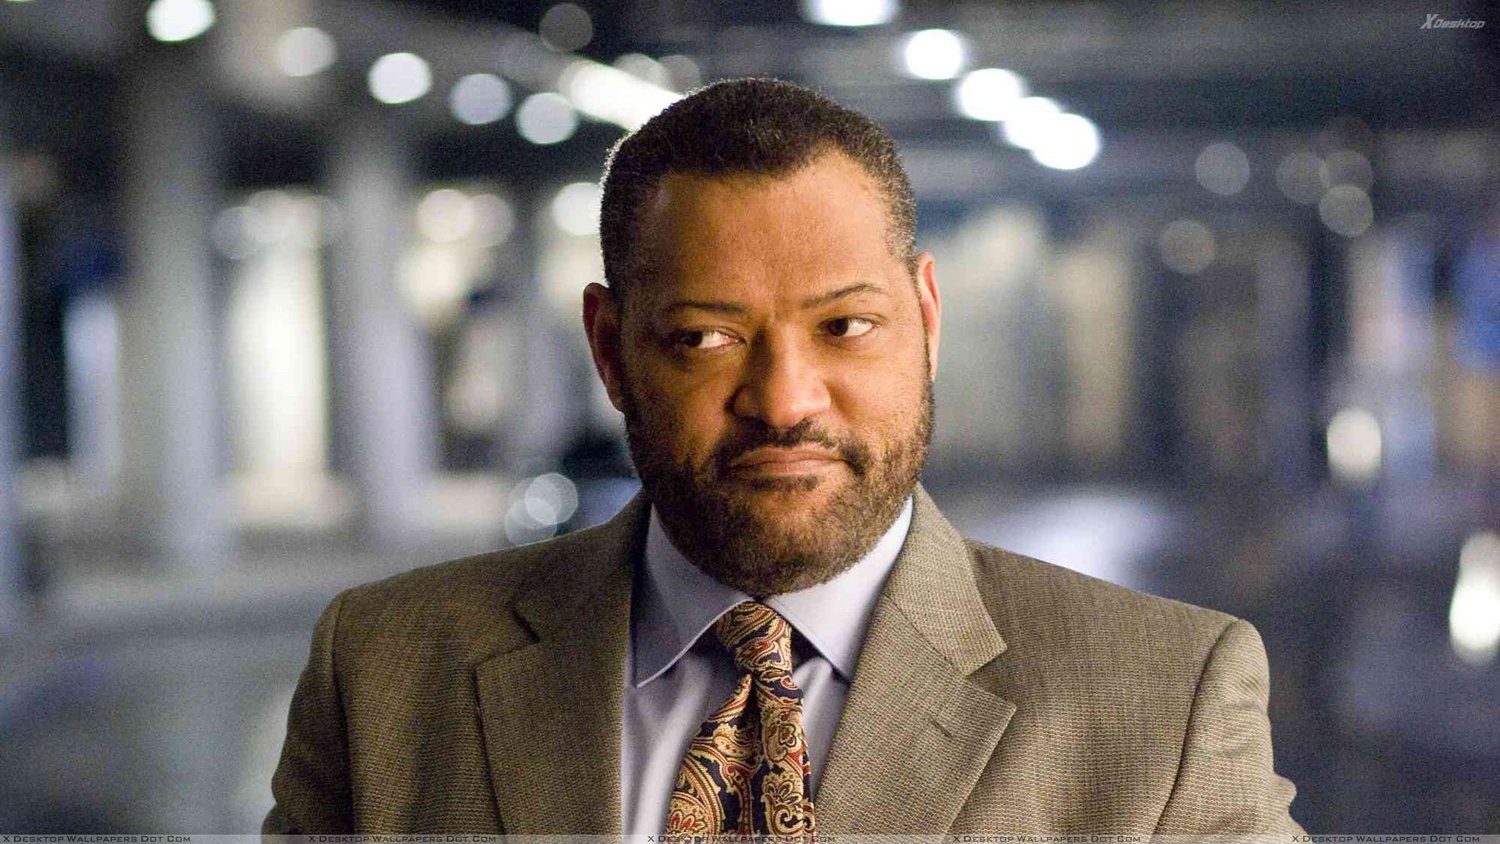 Laurence Fishburne Talks Turning Down JUSTICE LEAGUE and Says Marvel Is Kicking DC's Ass